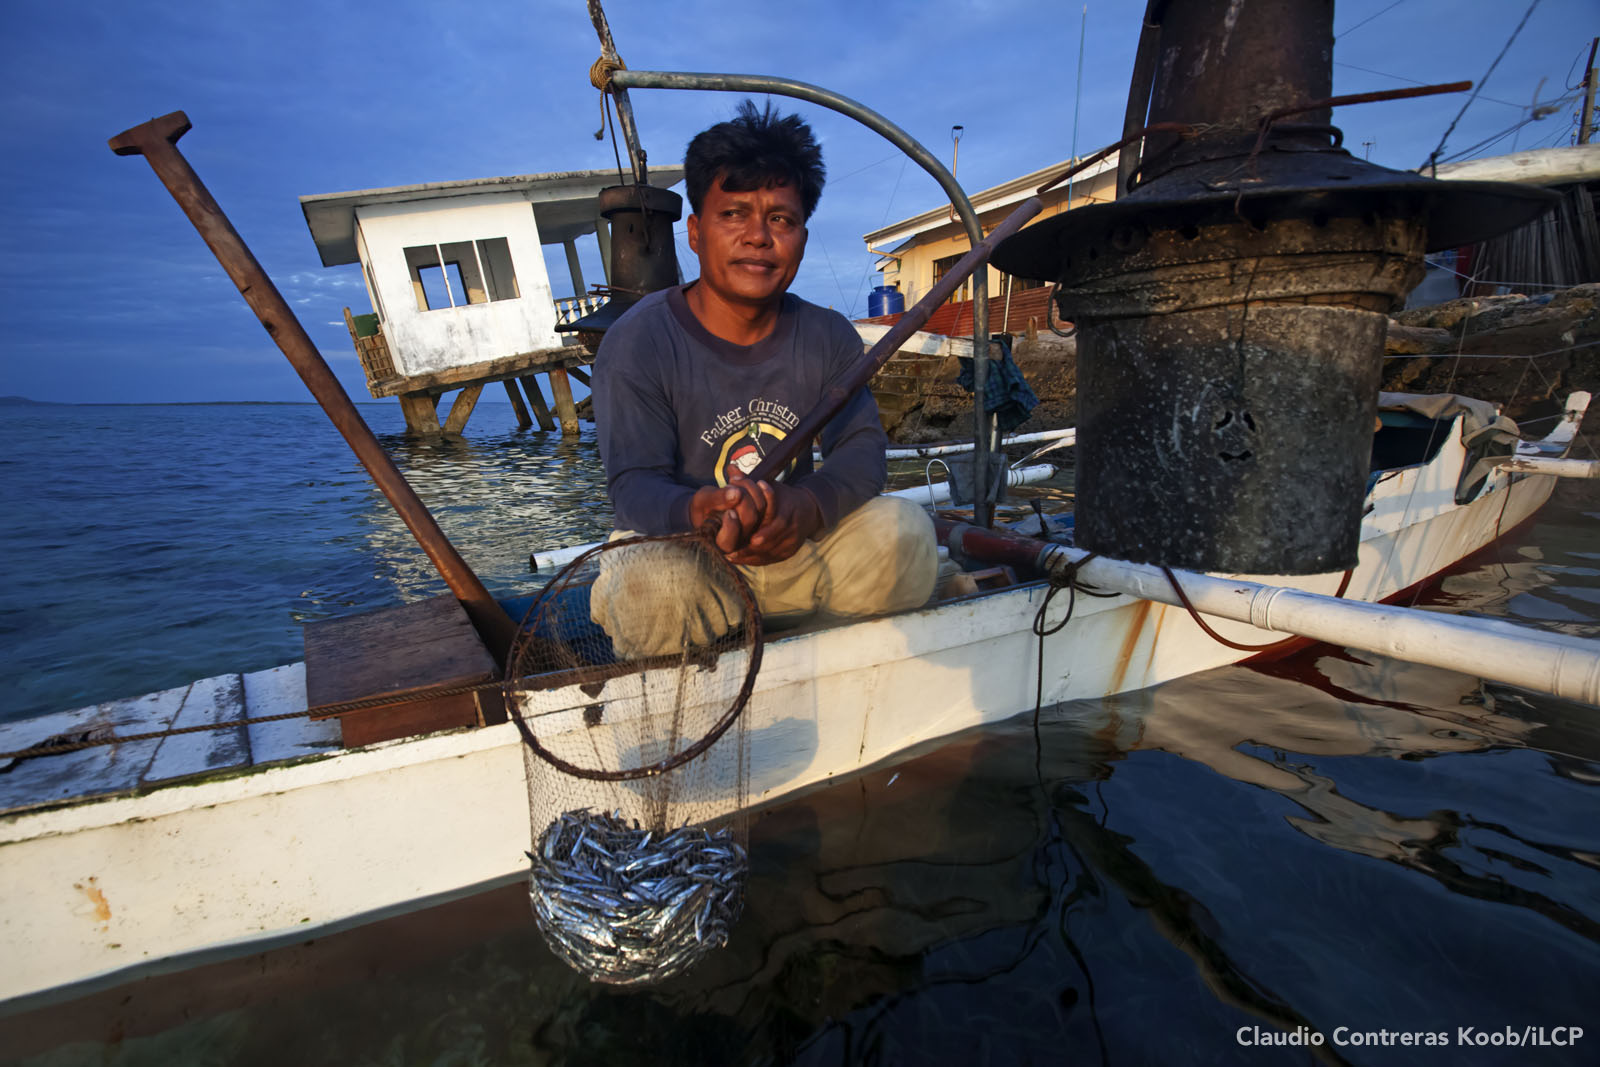 A fisher with his catch. A night's work might yield two kg of fish, worth about US $2.50. A generation ago, fishers fed entire families on just a few hours of fishing. Claudio Contreras Koob/iLCP